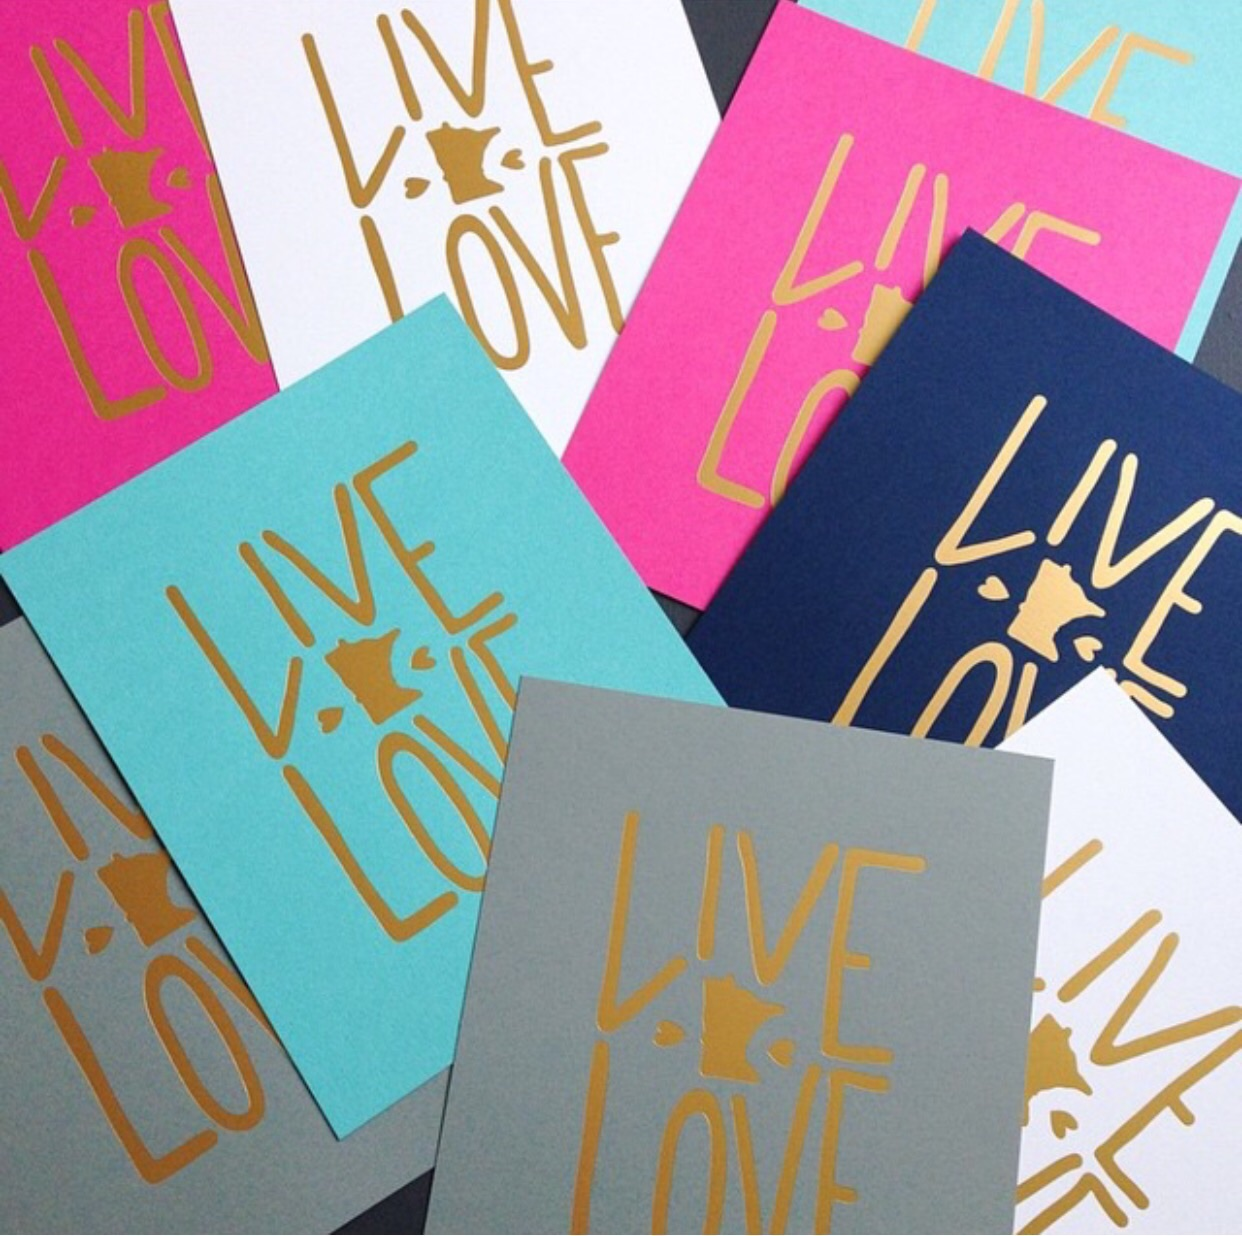 8 x 10 Art print comes in 5 beautiful colors with a matte gold foil graphic. Navy, white, Aqua, hot pink and grey.